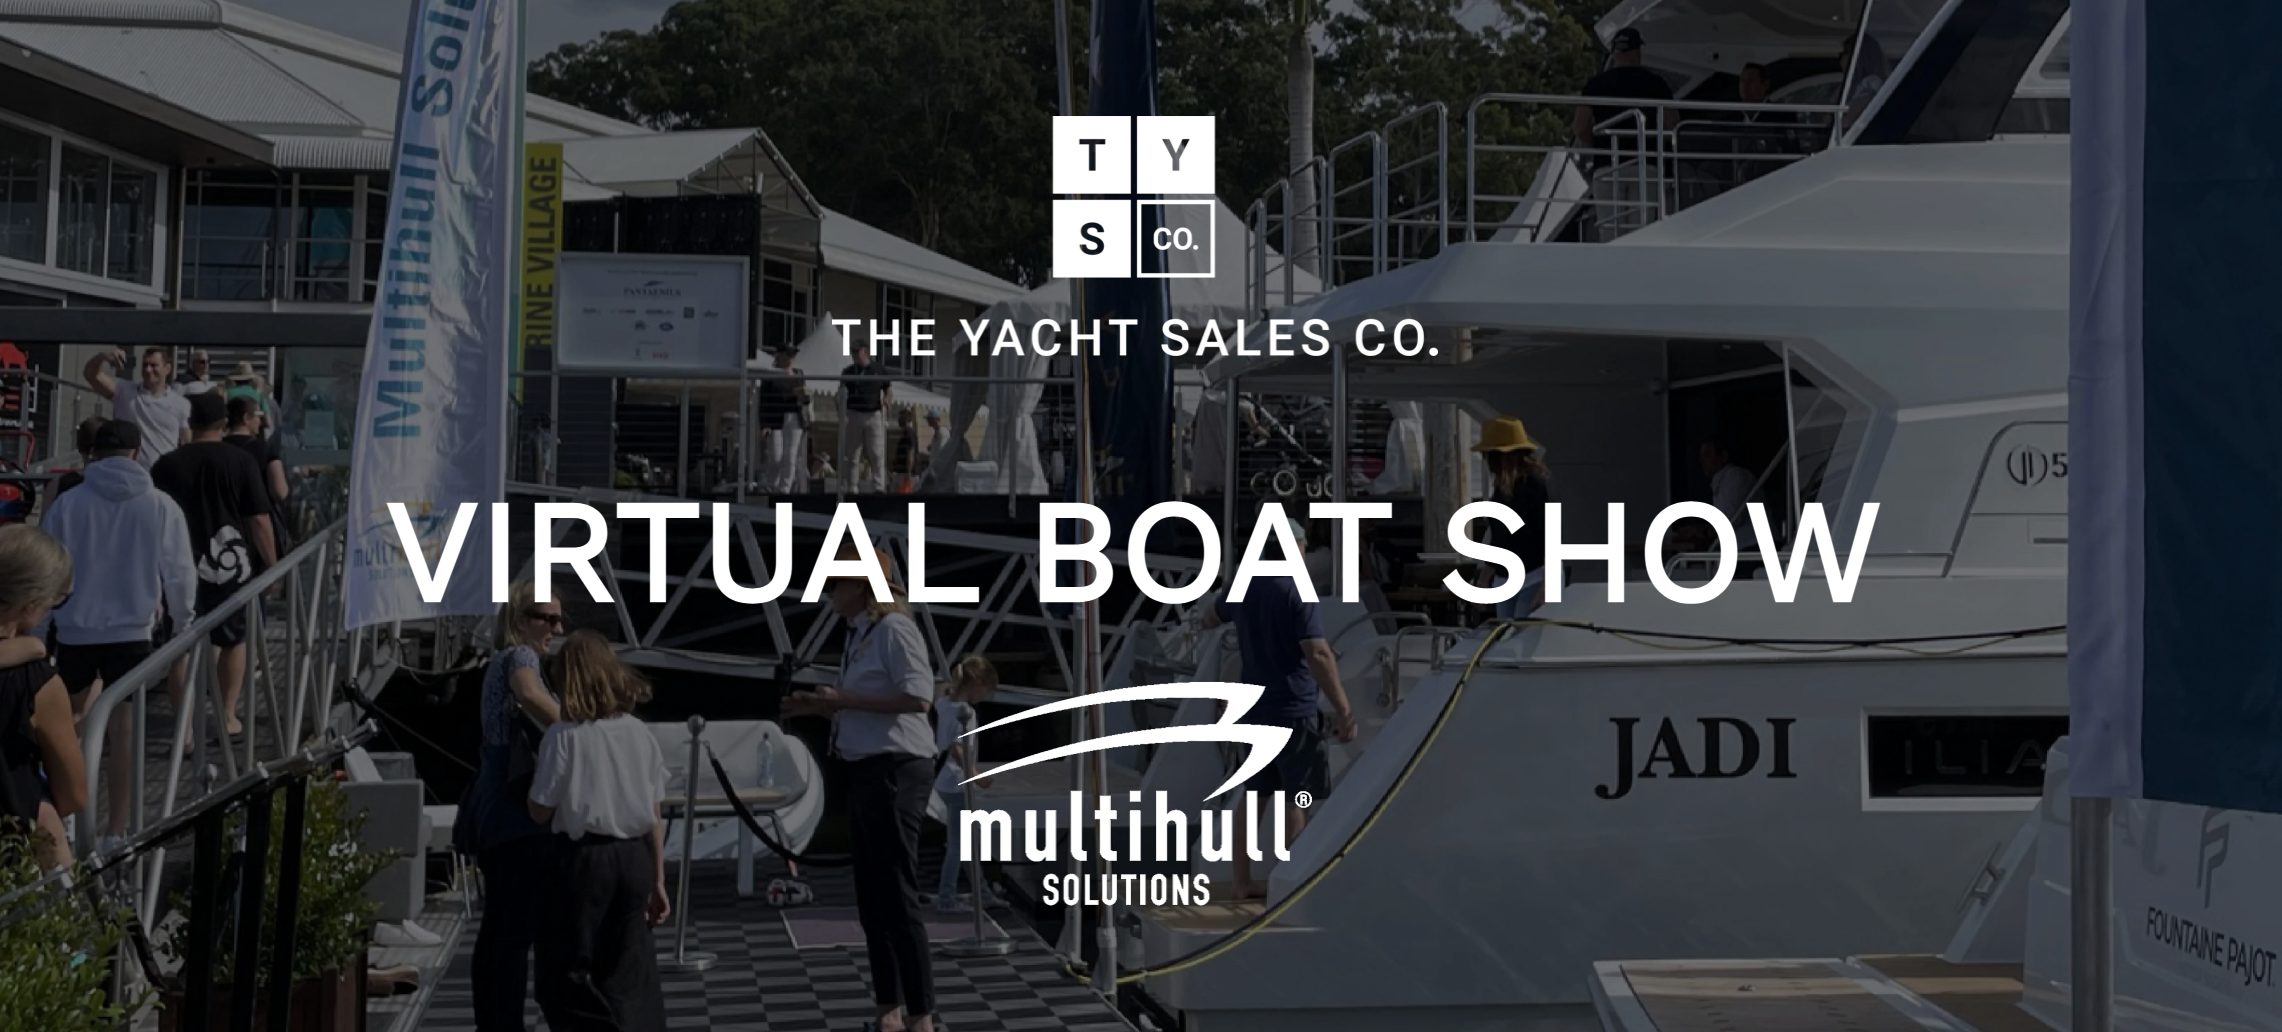 graphic for virtual boat show from Yacht Sales Co and Multihull Solutions